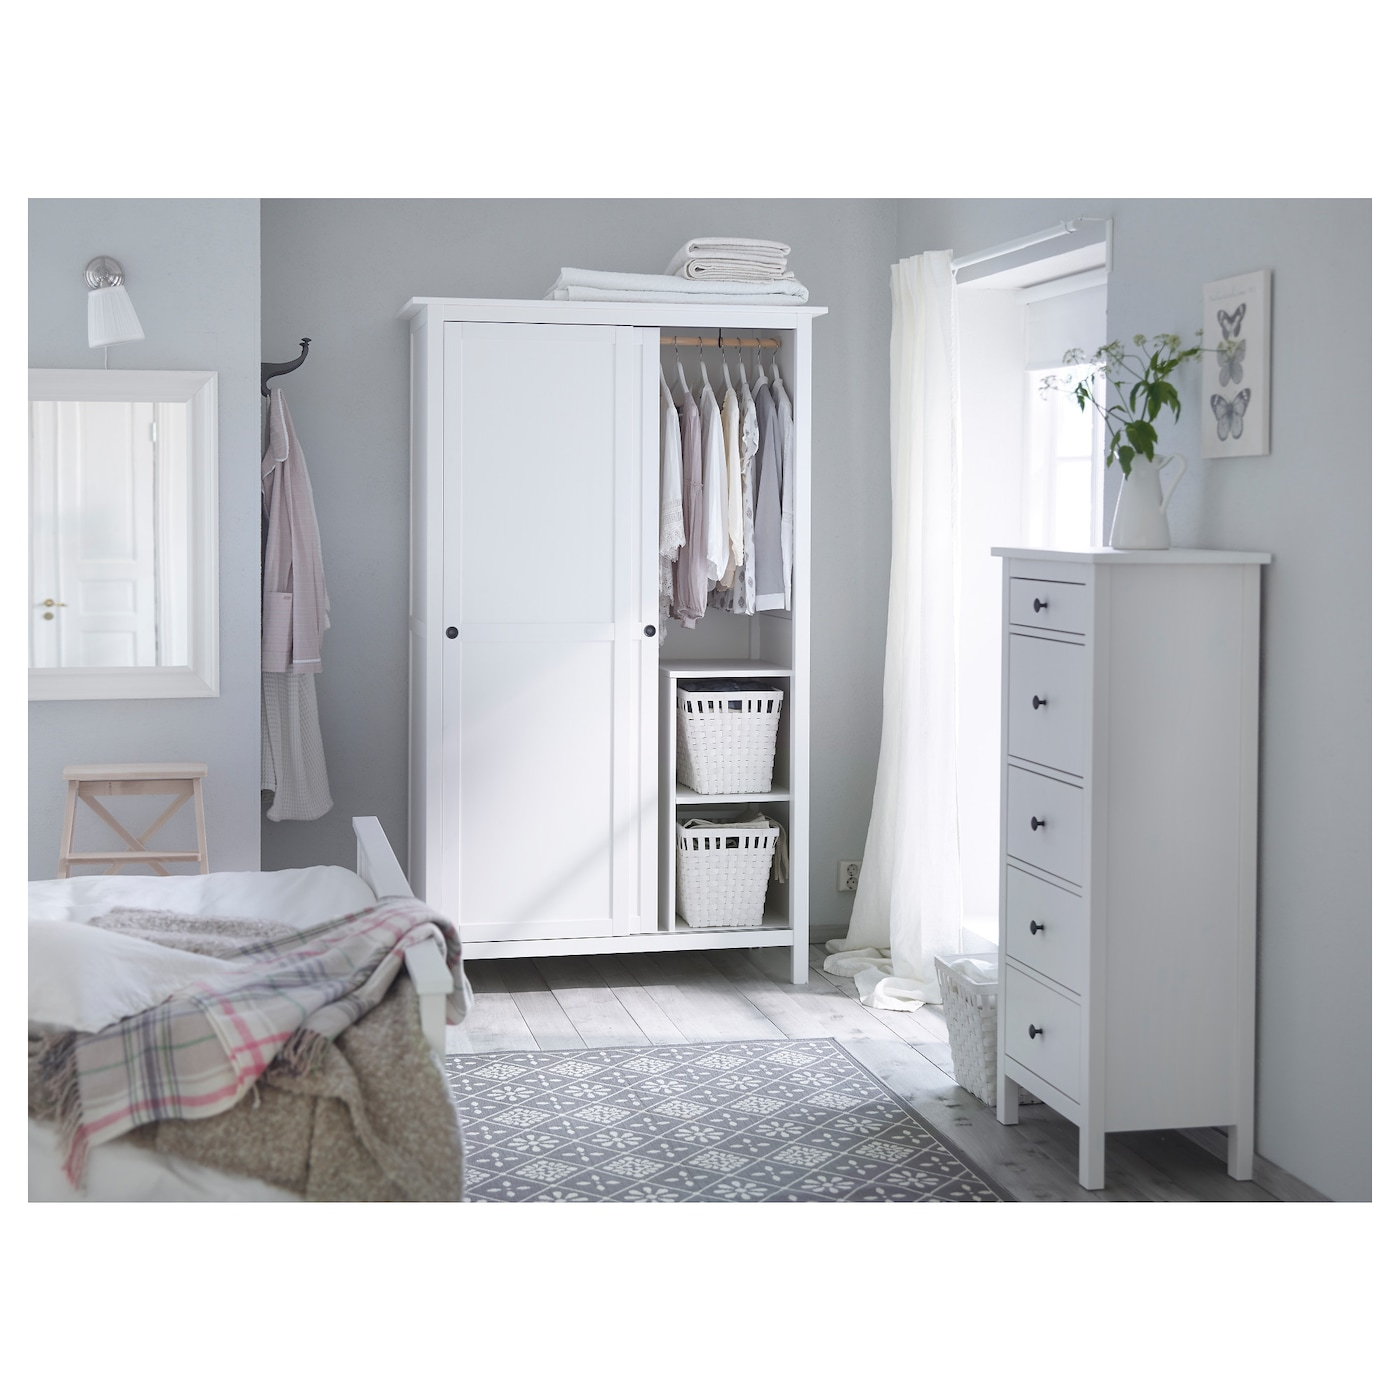 Hemnes chest of 5 drawers white stain 58x131 cm ikea for Ikea hemnes wohnzimmerserie